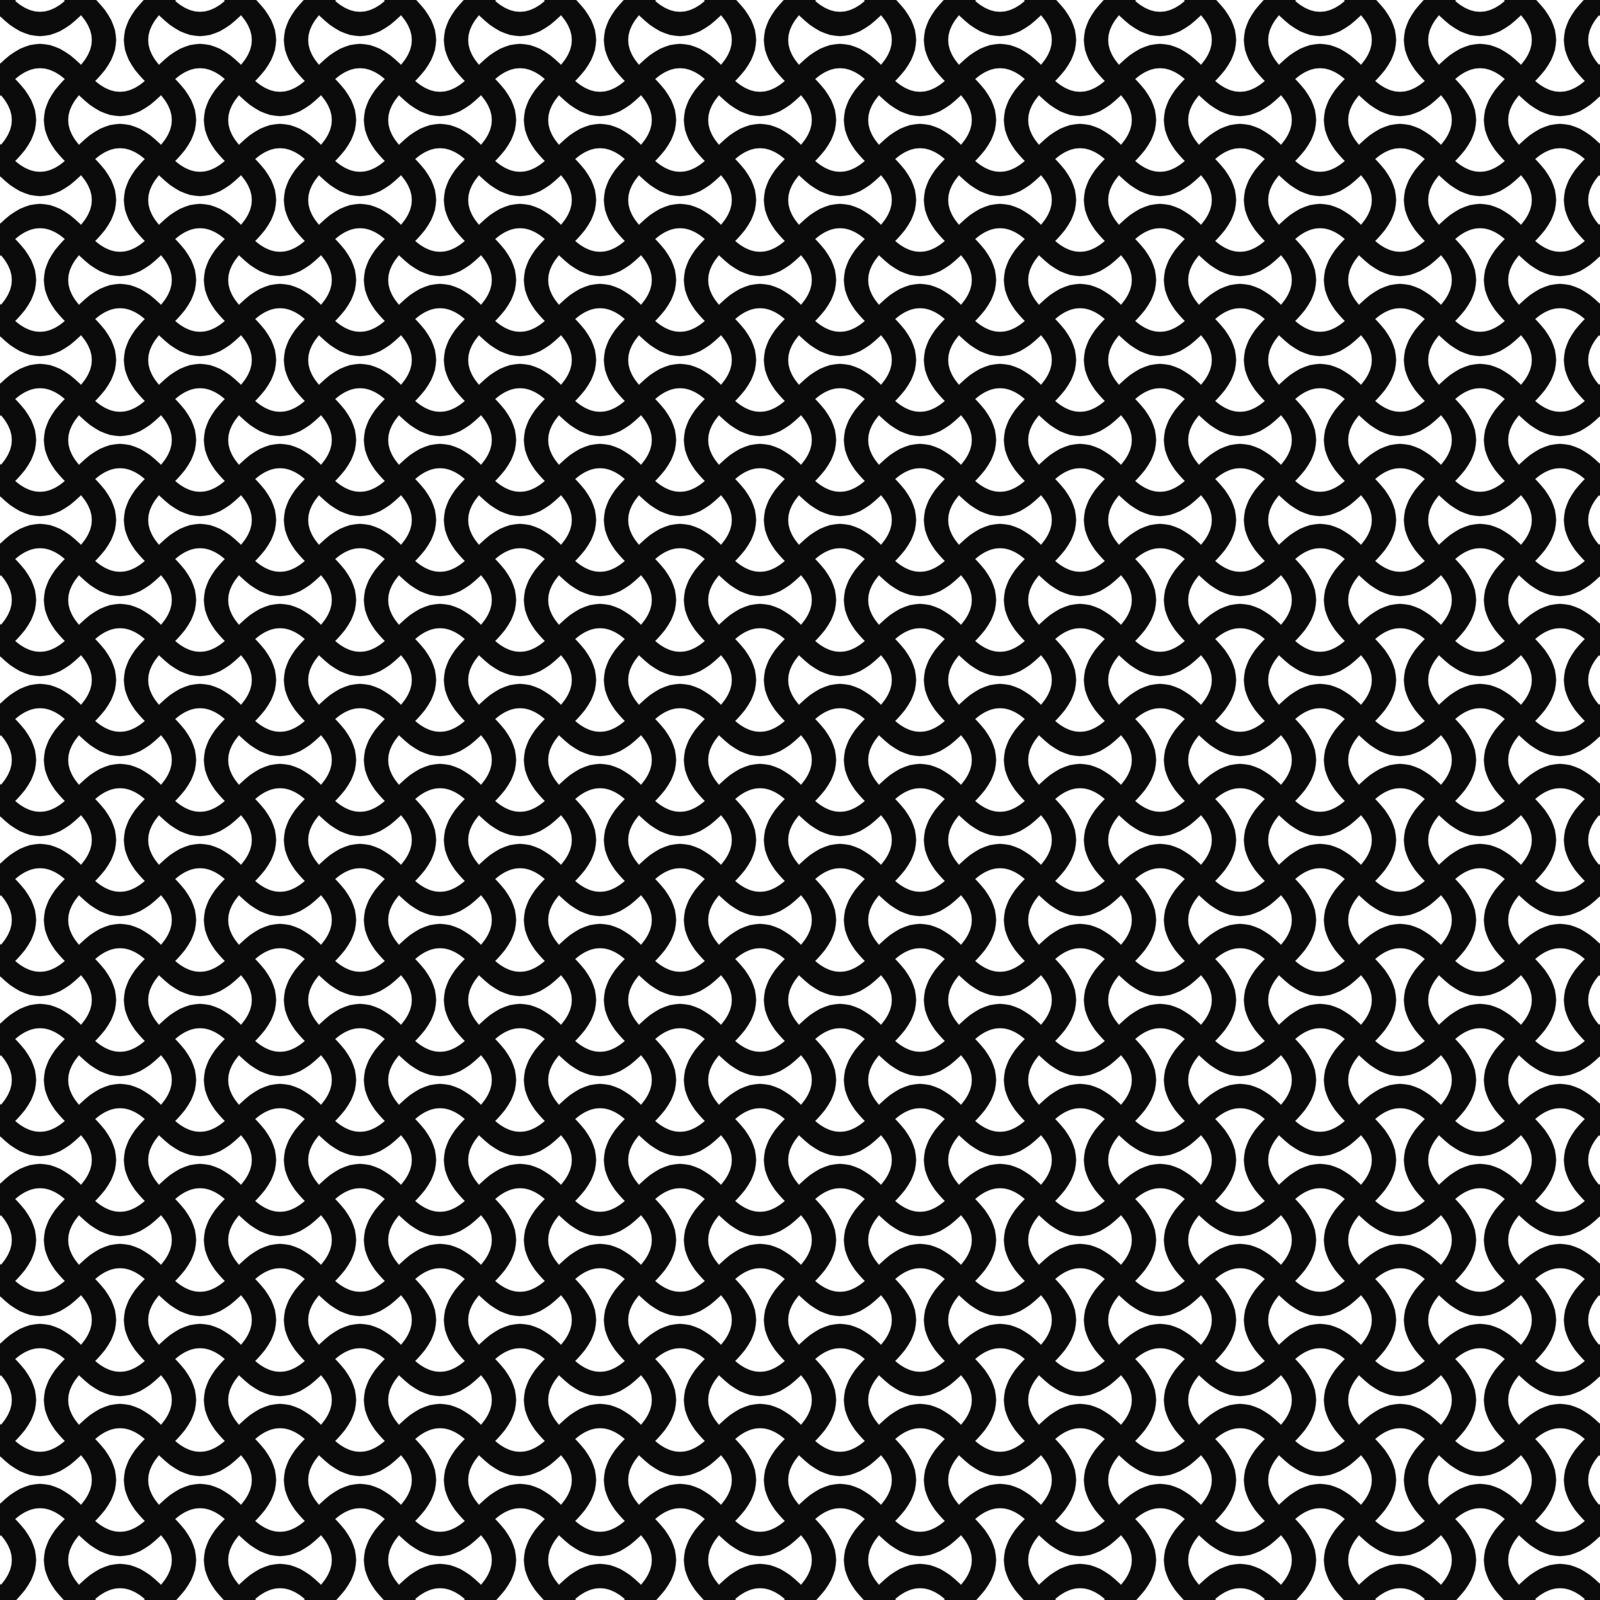 Monochrome abstract curly stripe repeat vector pattern